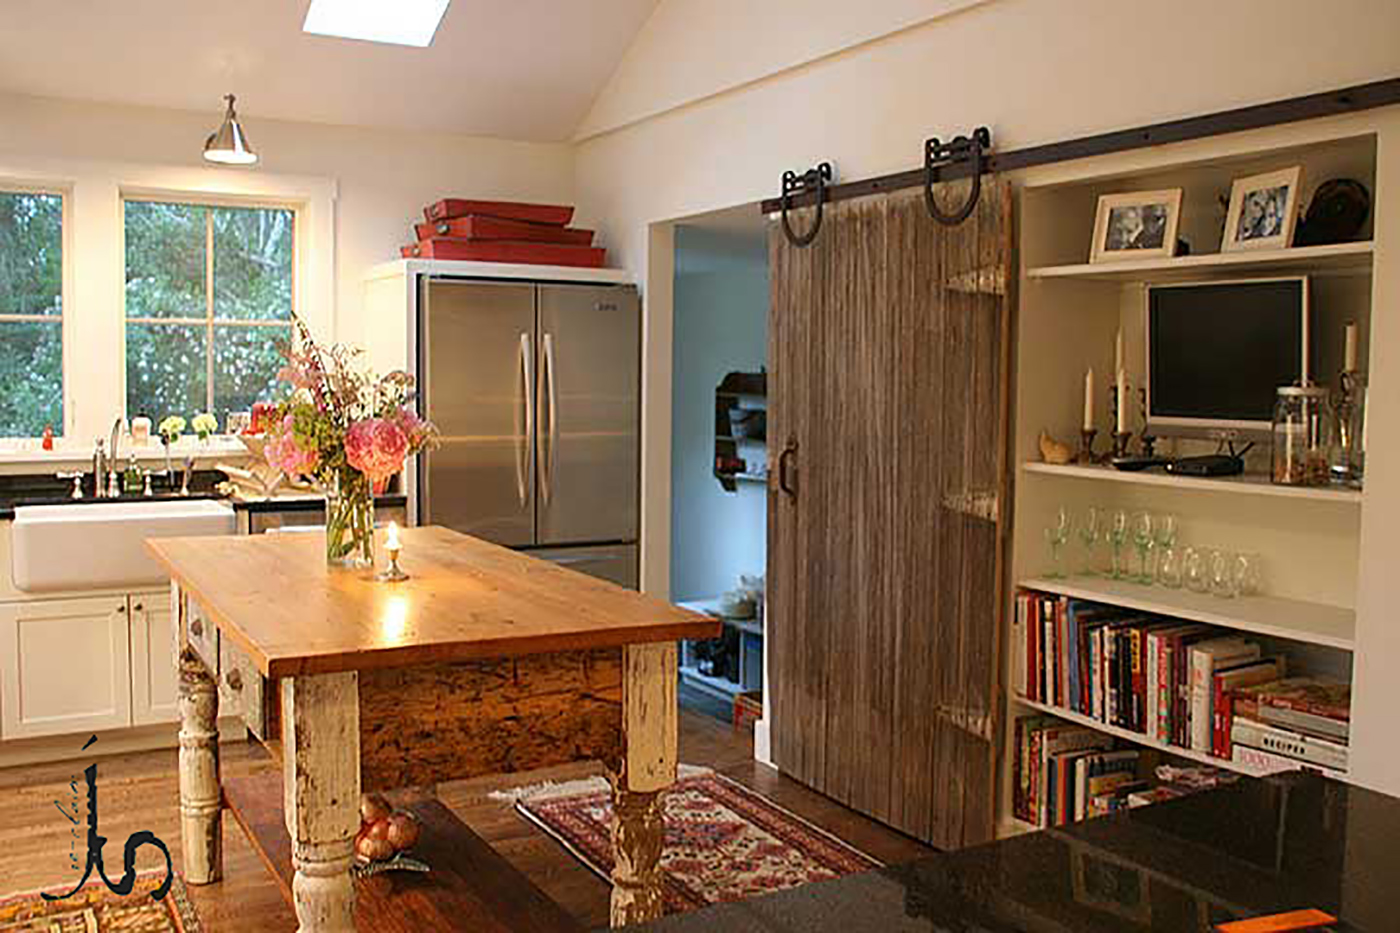 Jeff Soderbergh Sliding Barn Door